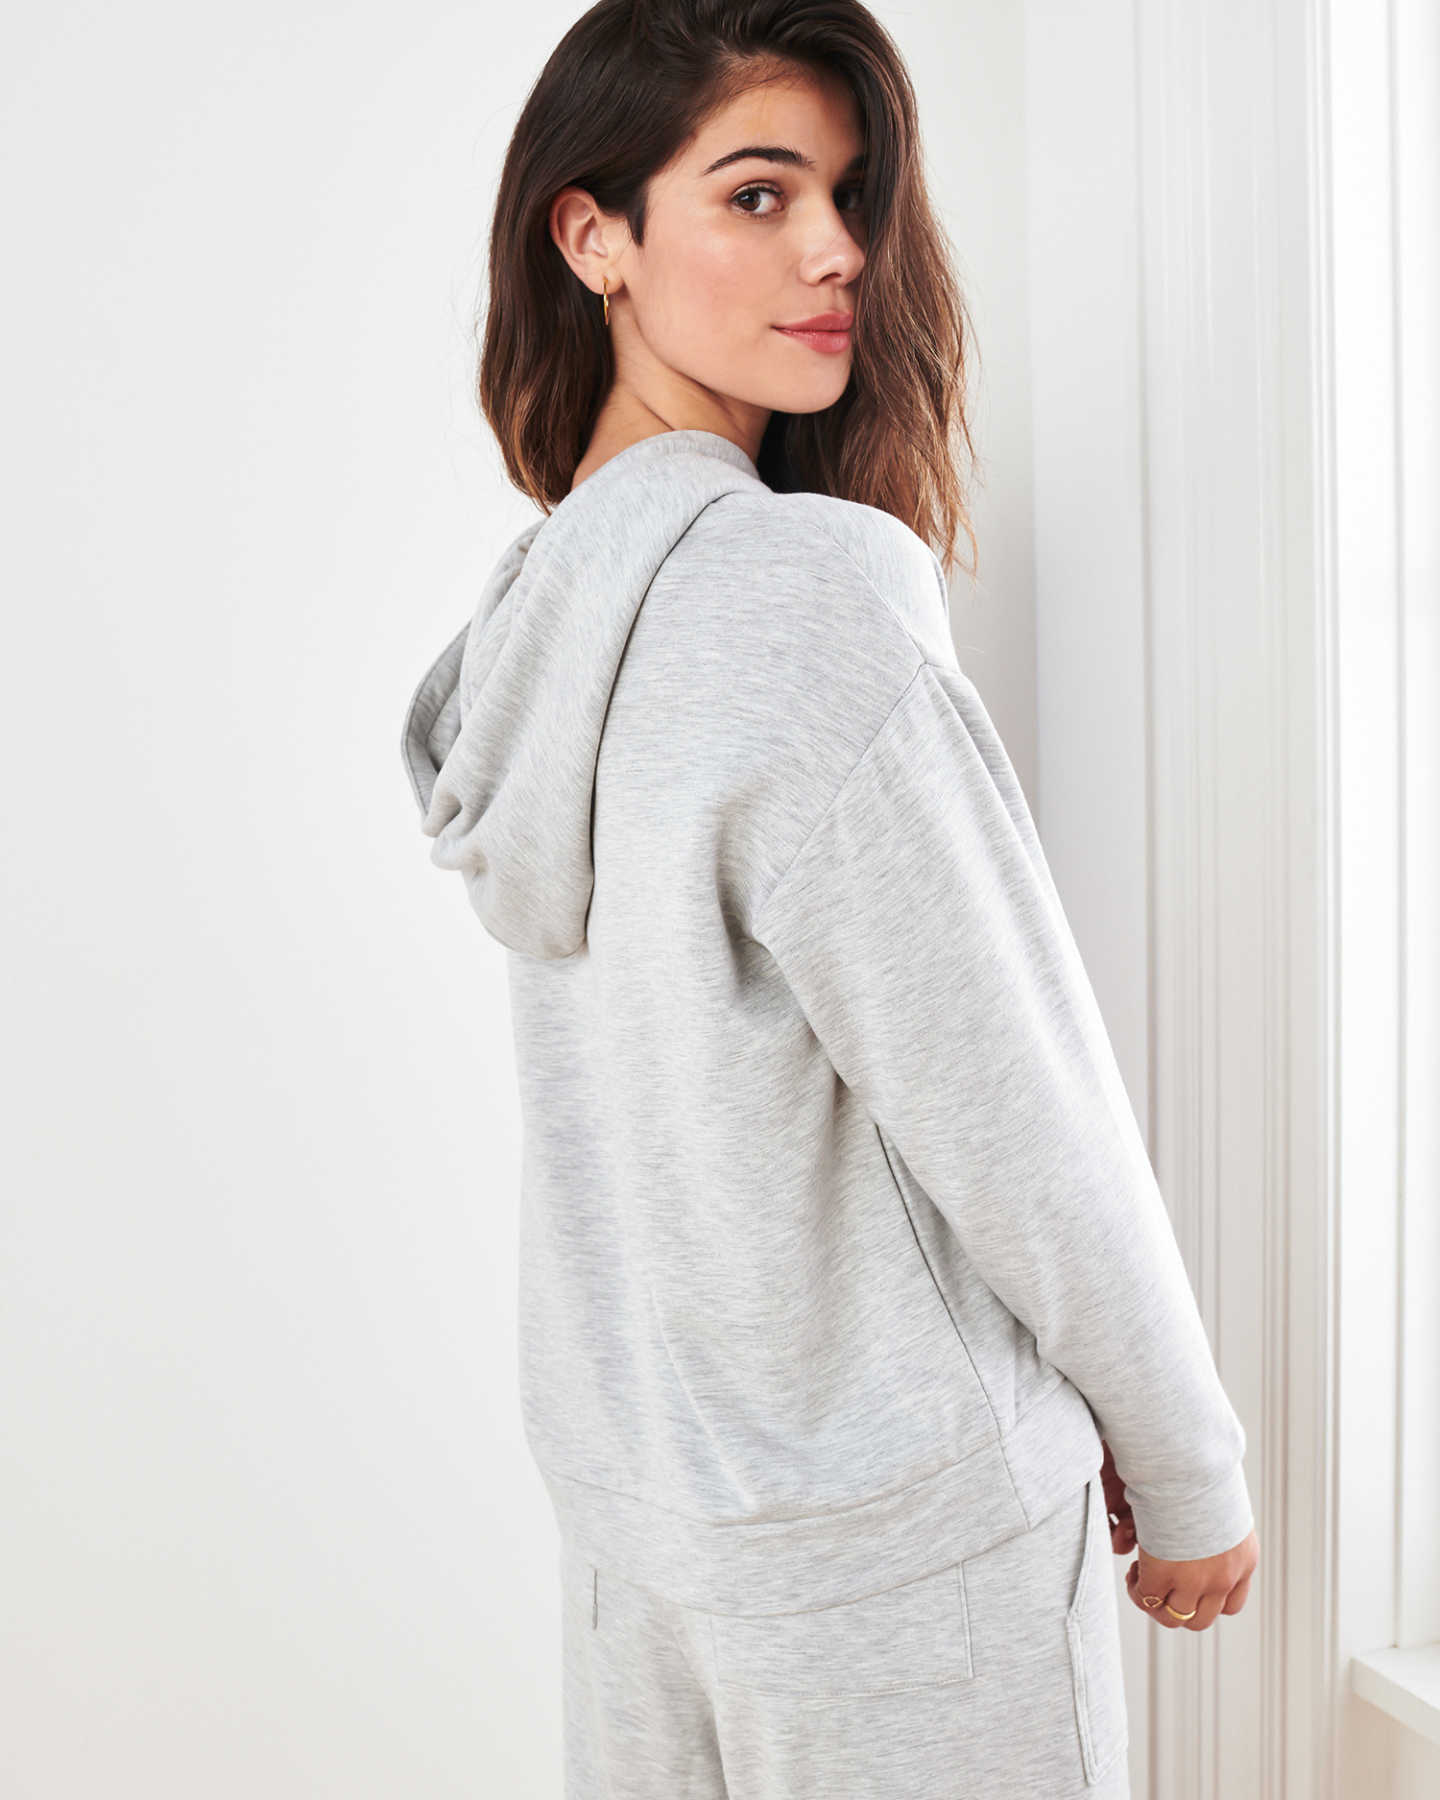 SuperSoft Fleece Pullover Hoodie - Heather Grey - 7